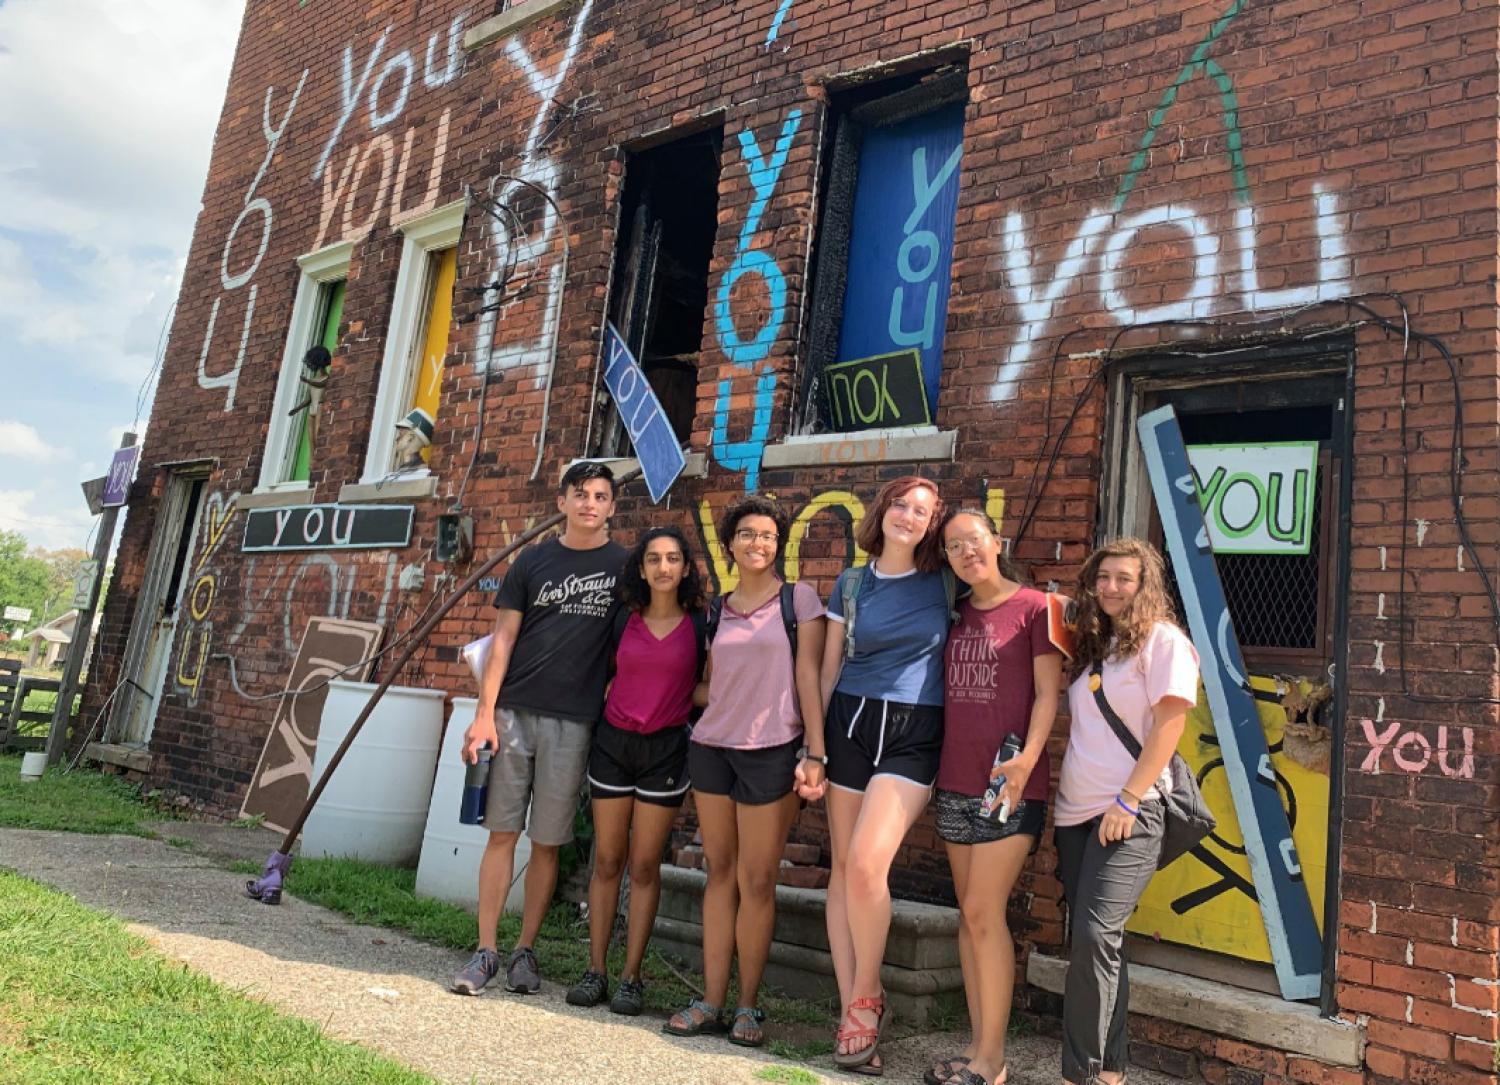 Students in front of brick building in Detroit with the word YOU painted on it